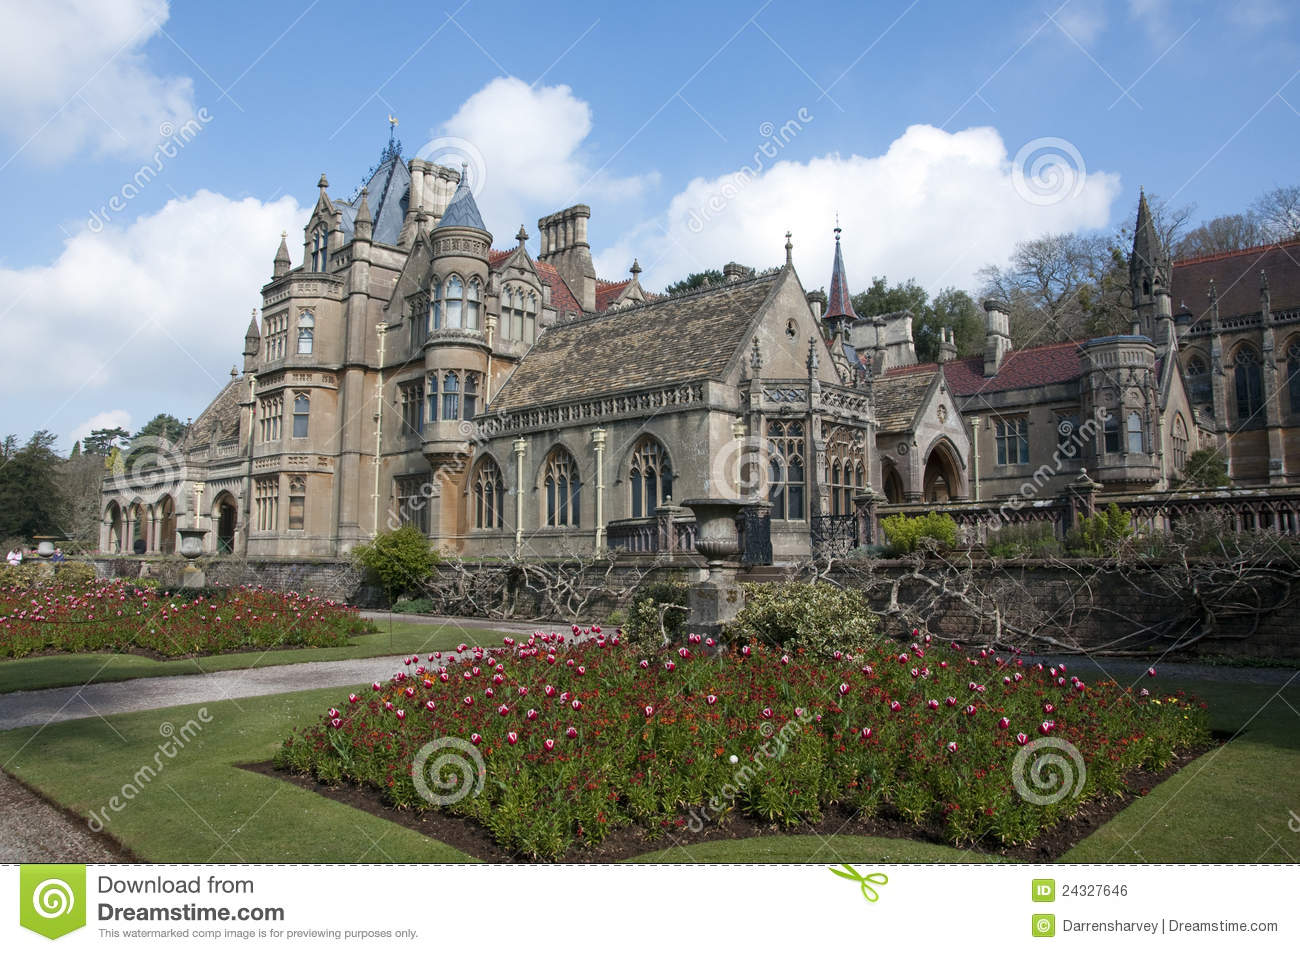 Tyntesfield Manor House stock photo. Image of english